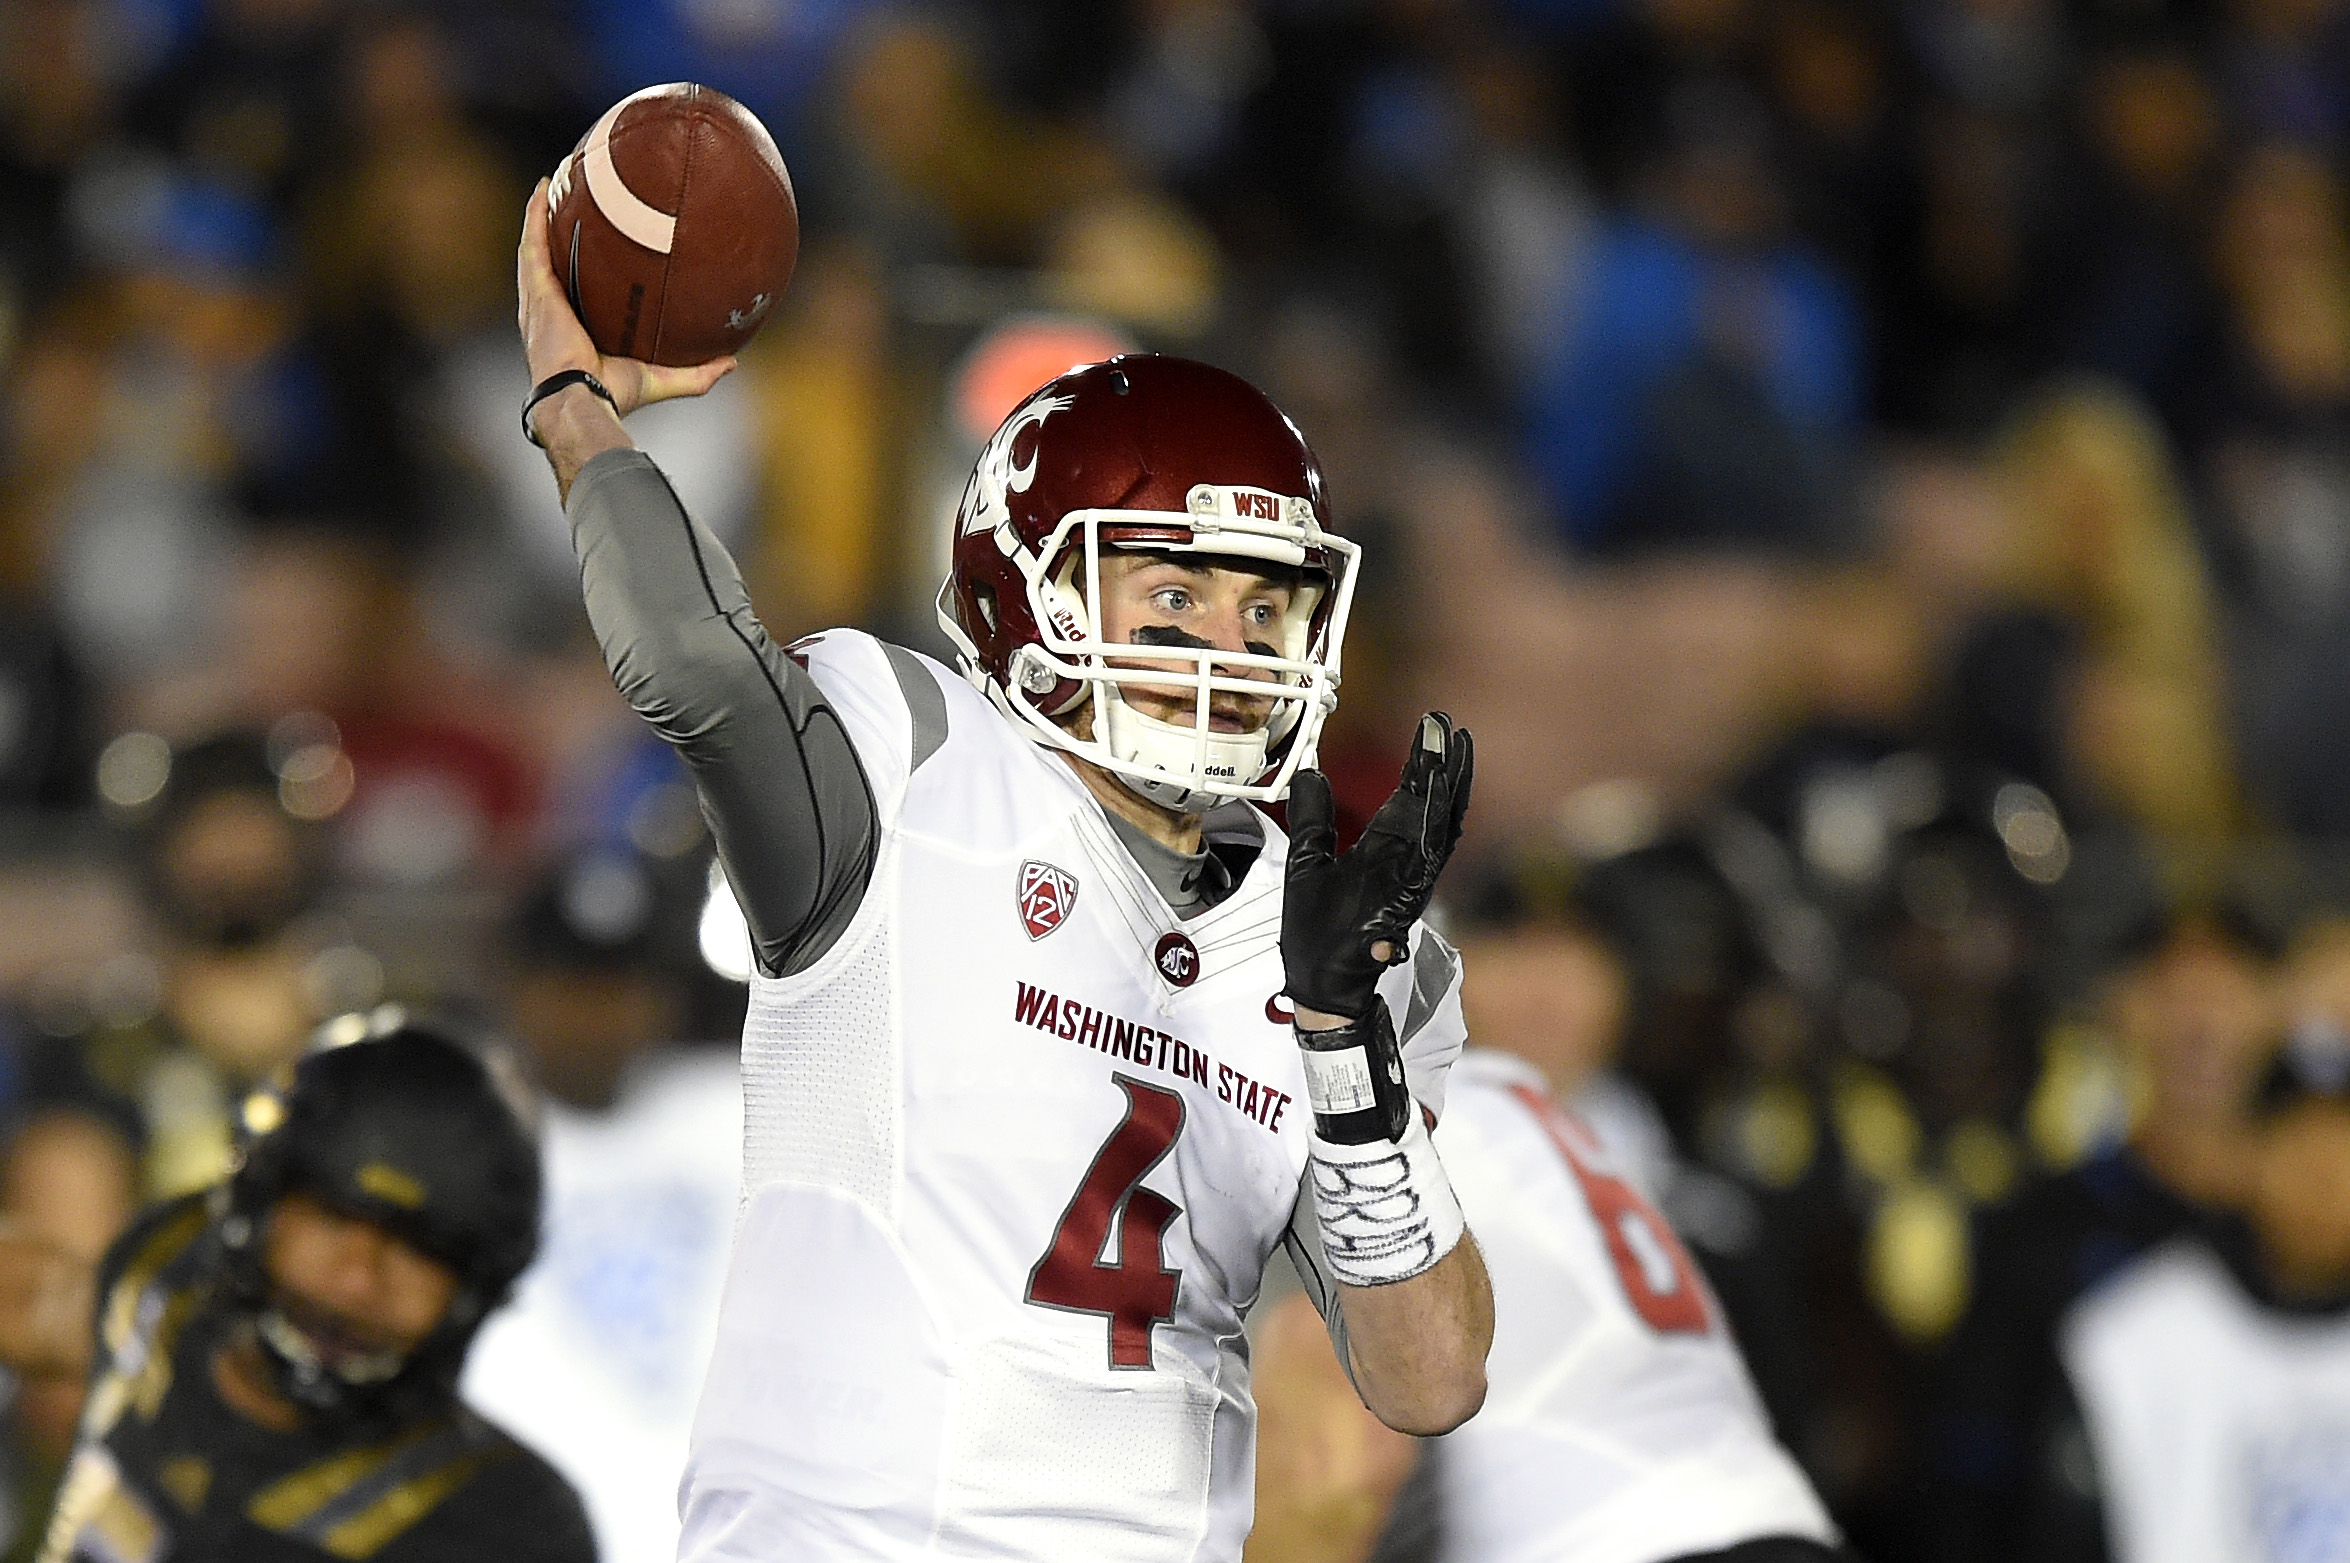 Washington State quarterback Luke Falk passes during the first half of an NCAA college football game against UCLA, Saturday, Nov. 14, 2015, in Pasadena, Calif. (AP Photo/Mark J. Terrill)